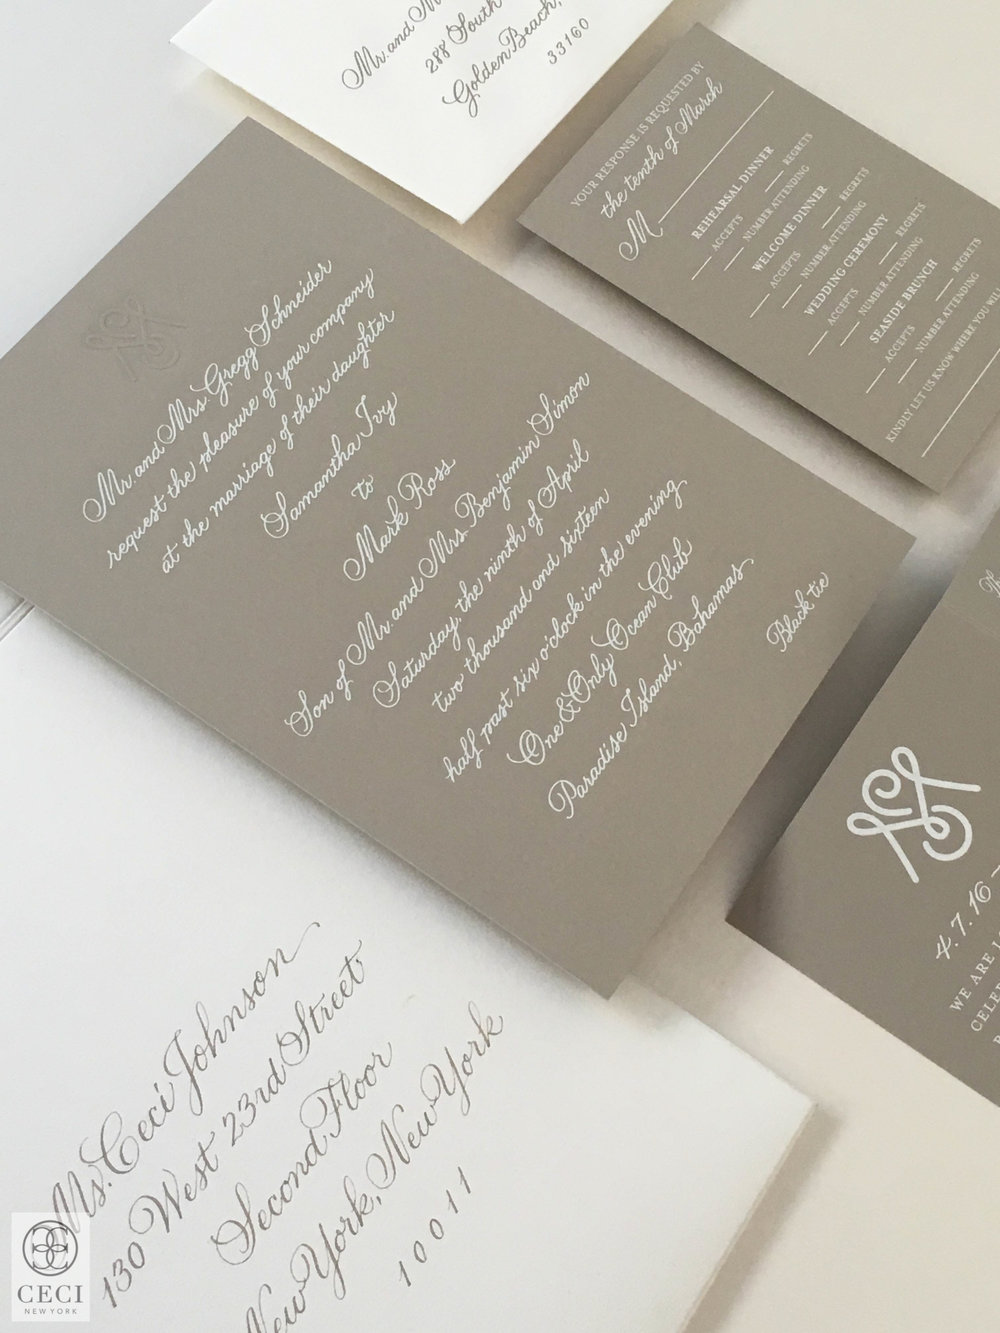 Ceci_New_York_Ceci_Style_Ceci_Johnson_Luxury_Lifestyle_Paradise_Island_Bahamas_Wedding_Engraved_Inspiration_Design_Custom_Couture_Personalized_Invitations_--4.jpg